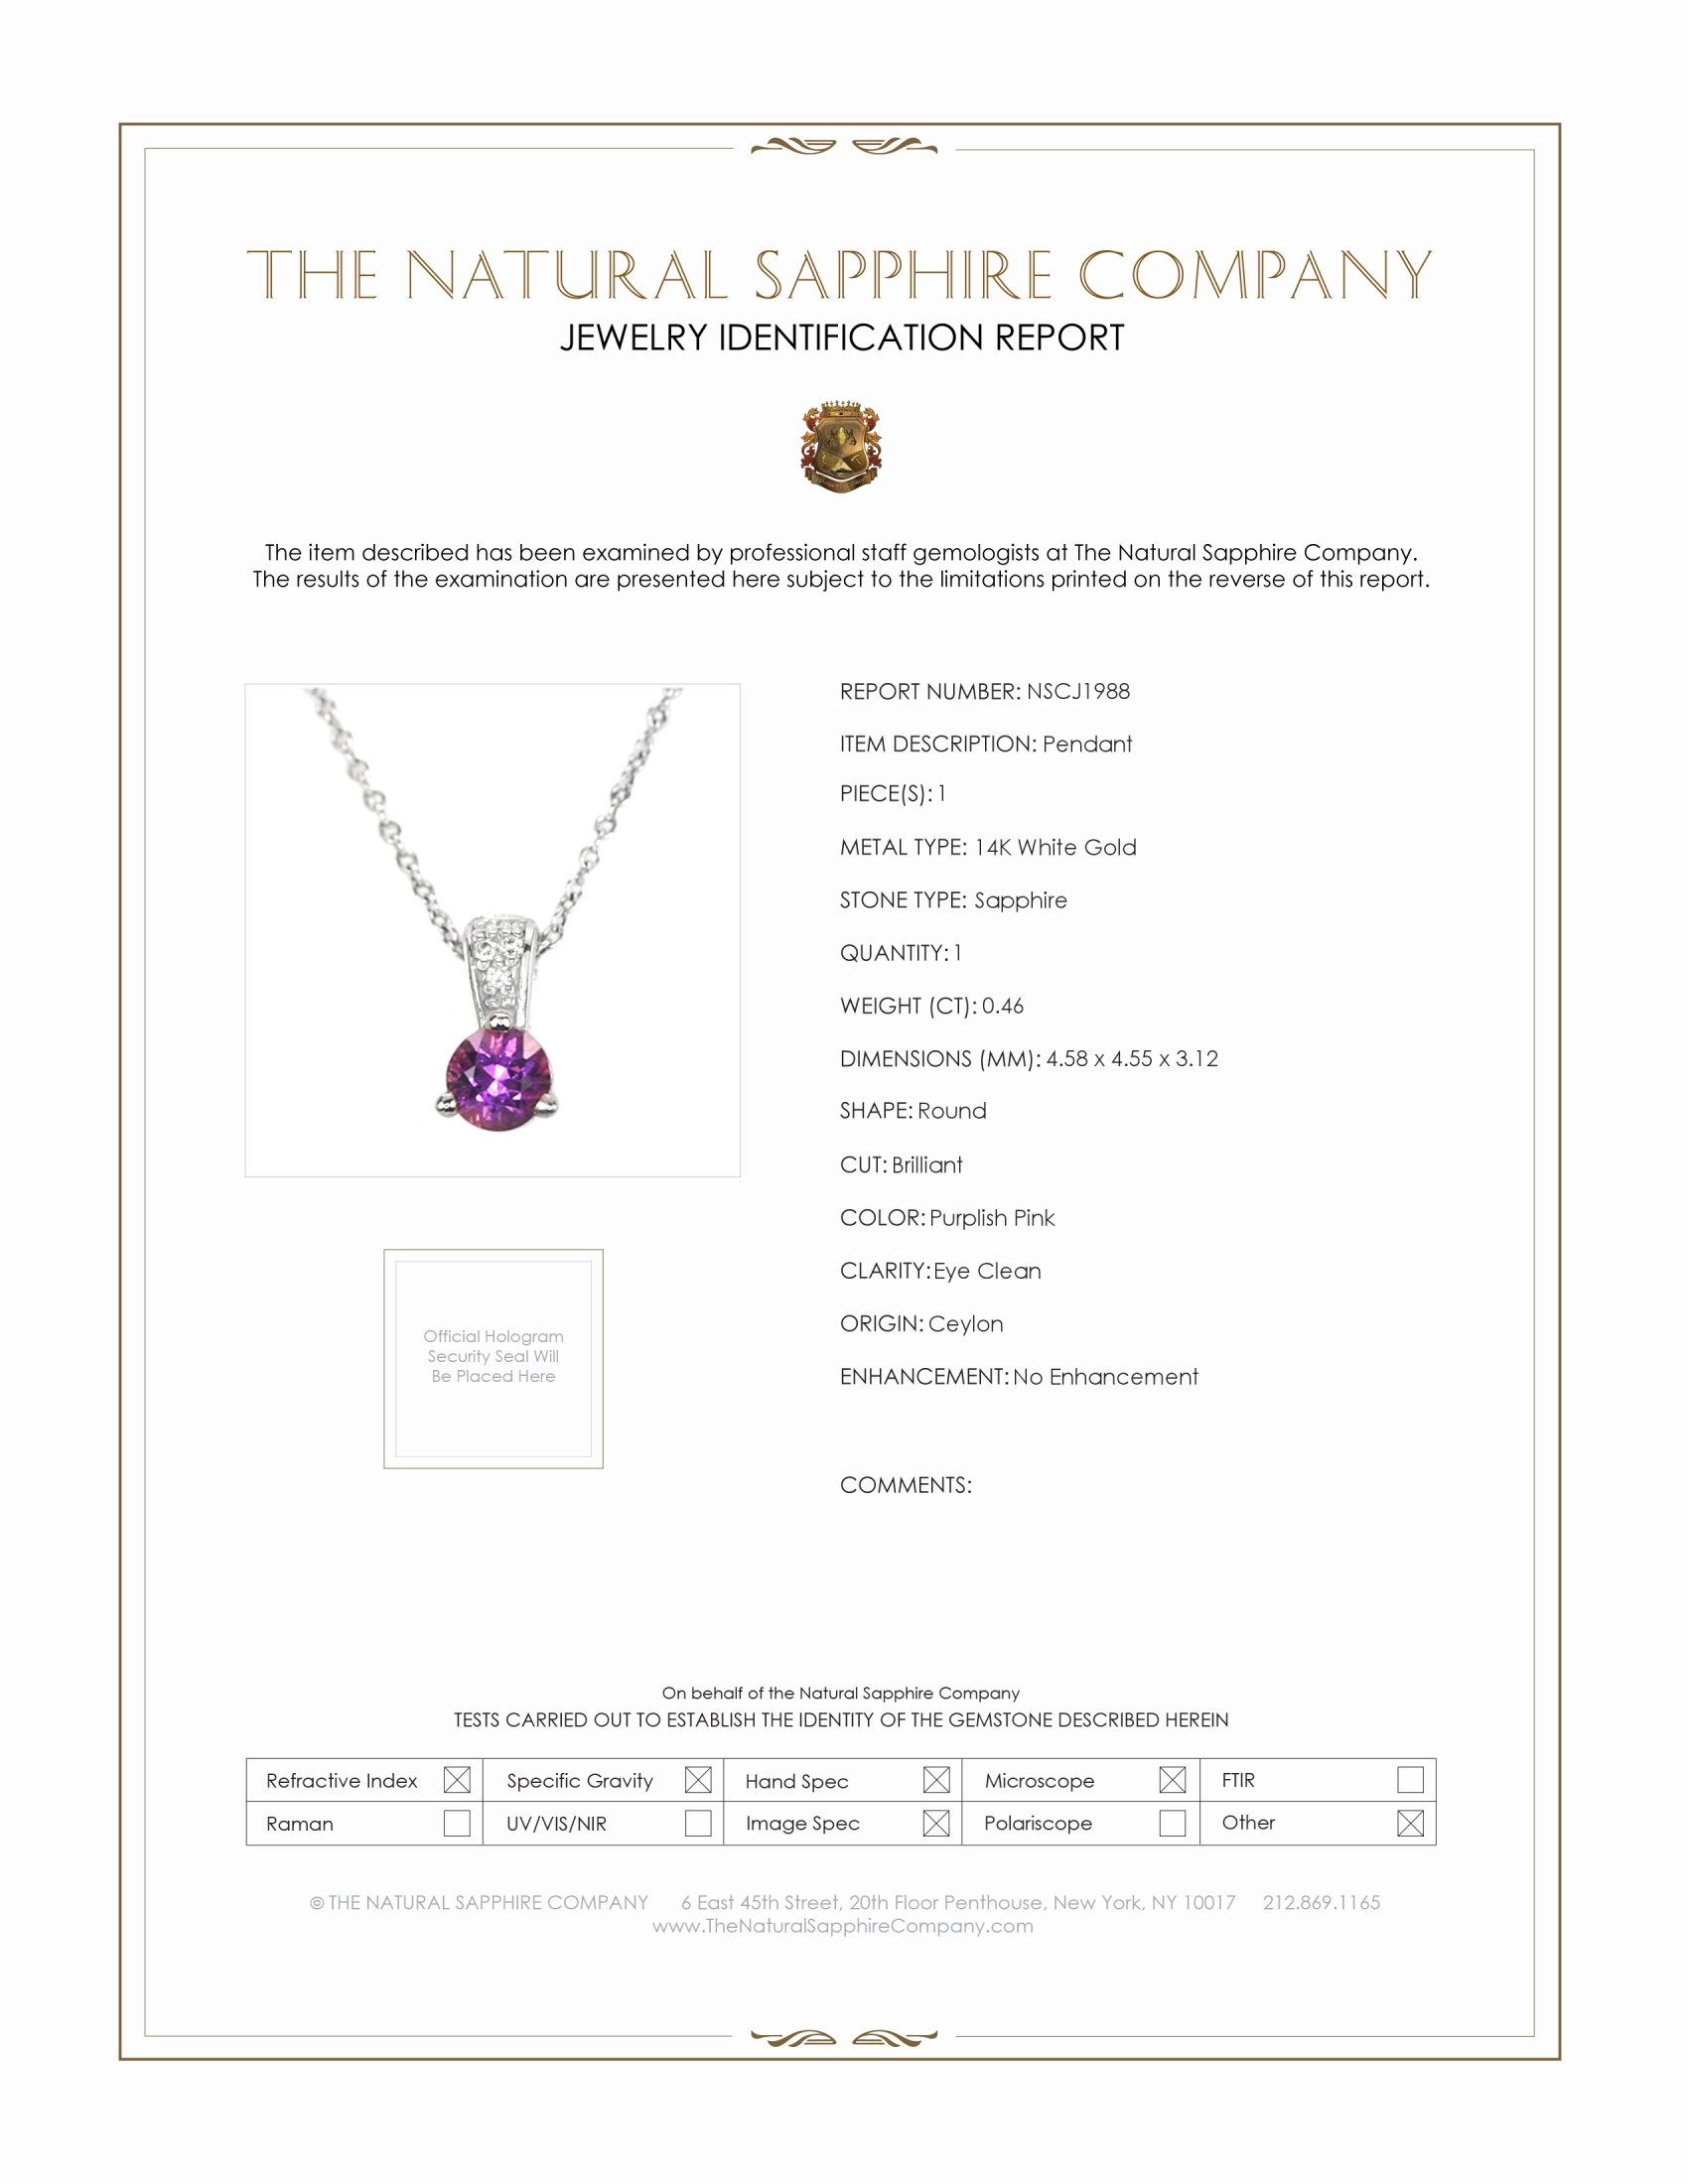 0.46ct Purplish Pink Sapphire Pendant Certification